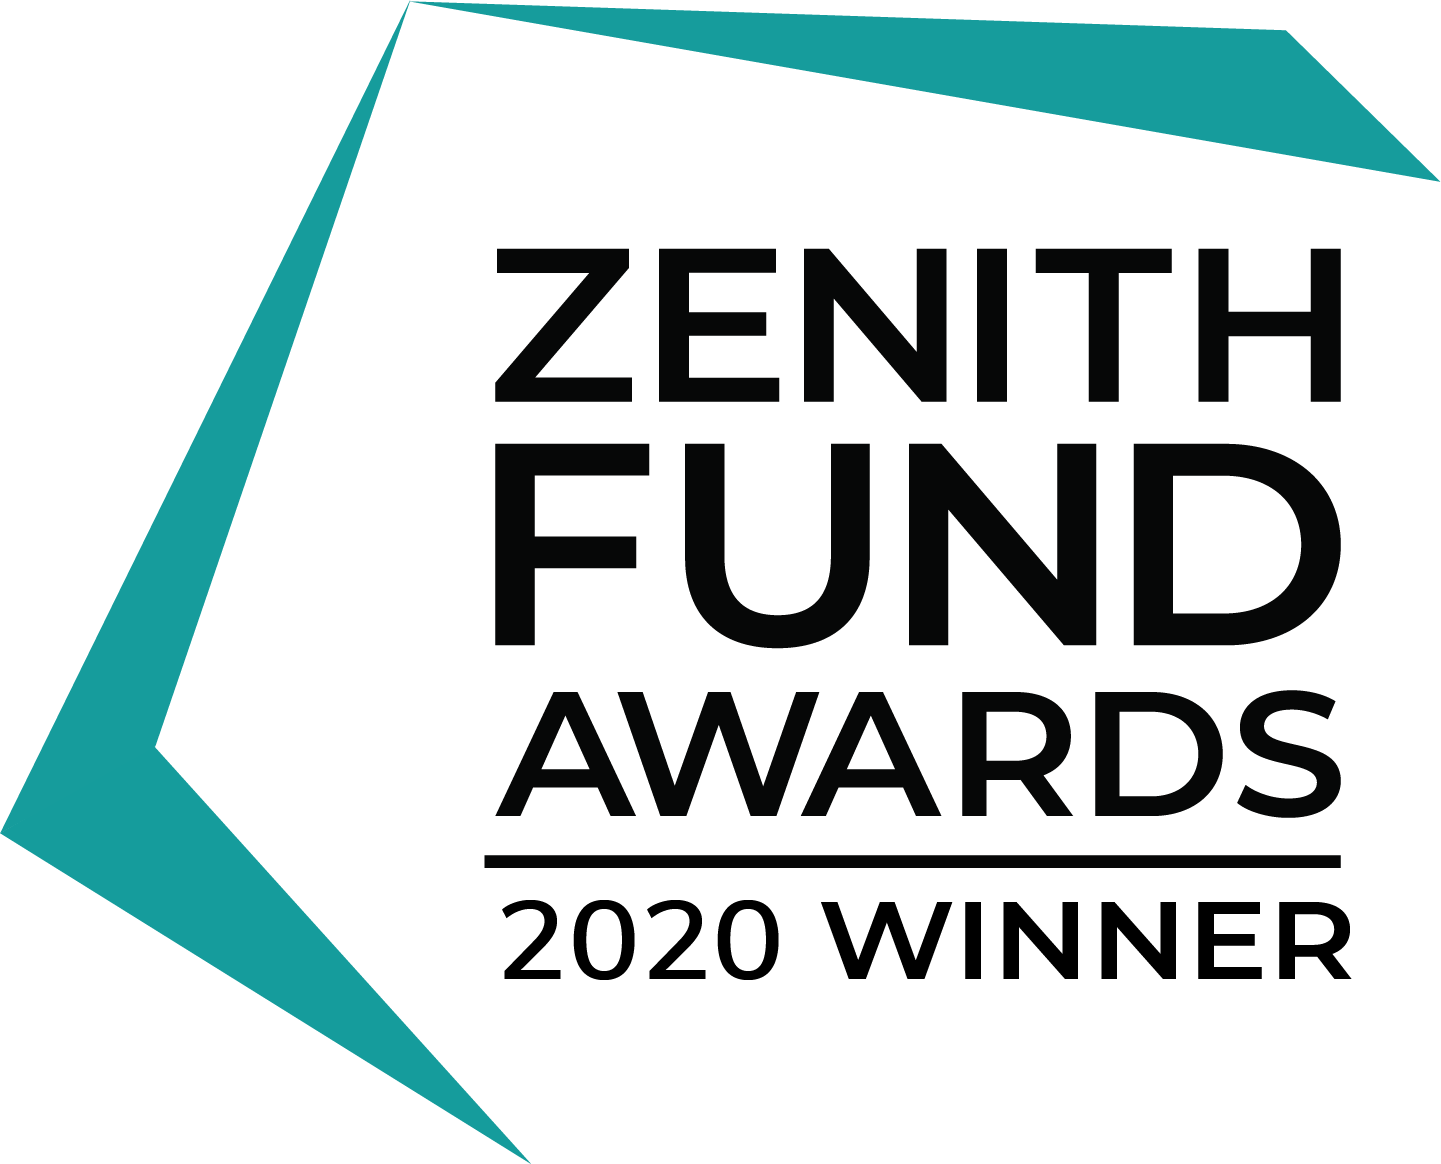 Zenith fund awards 2020 winner